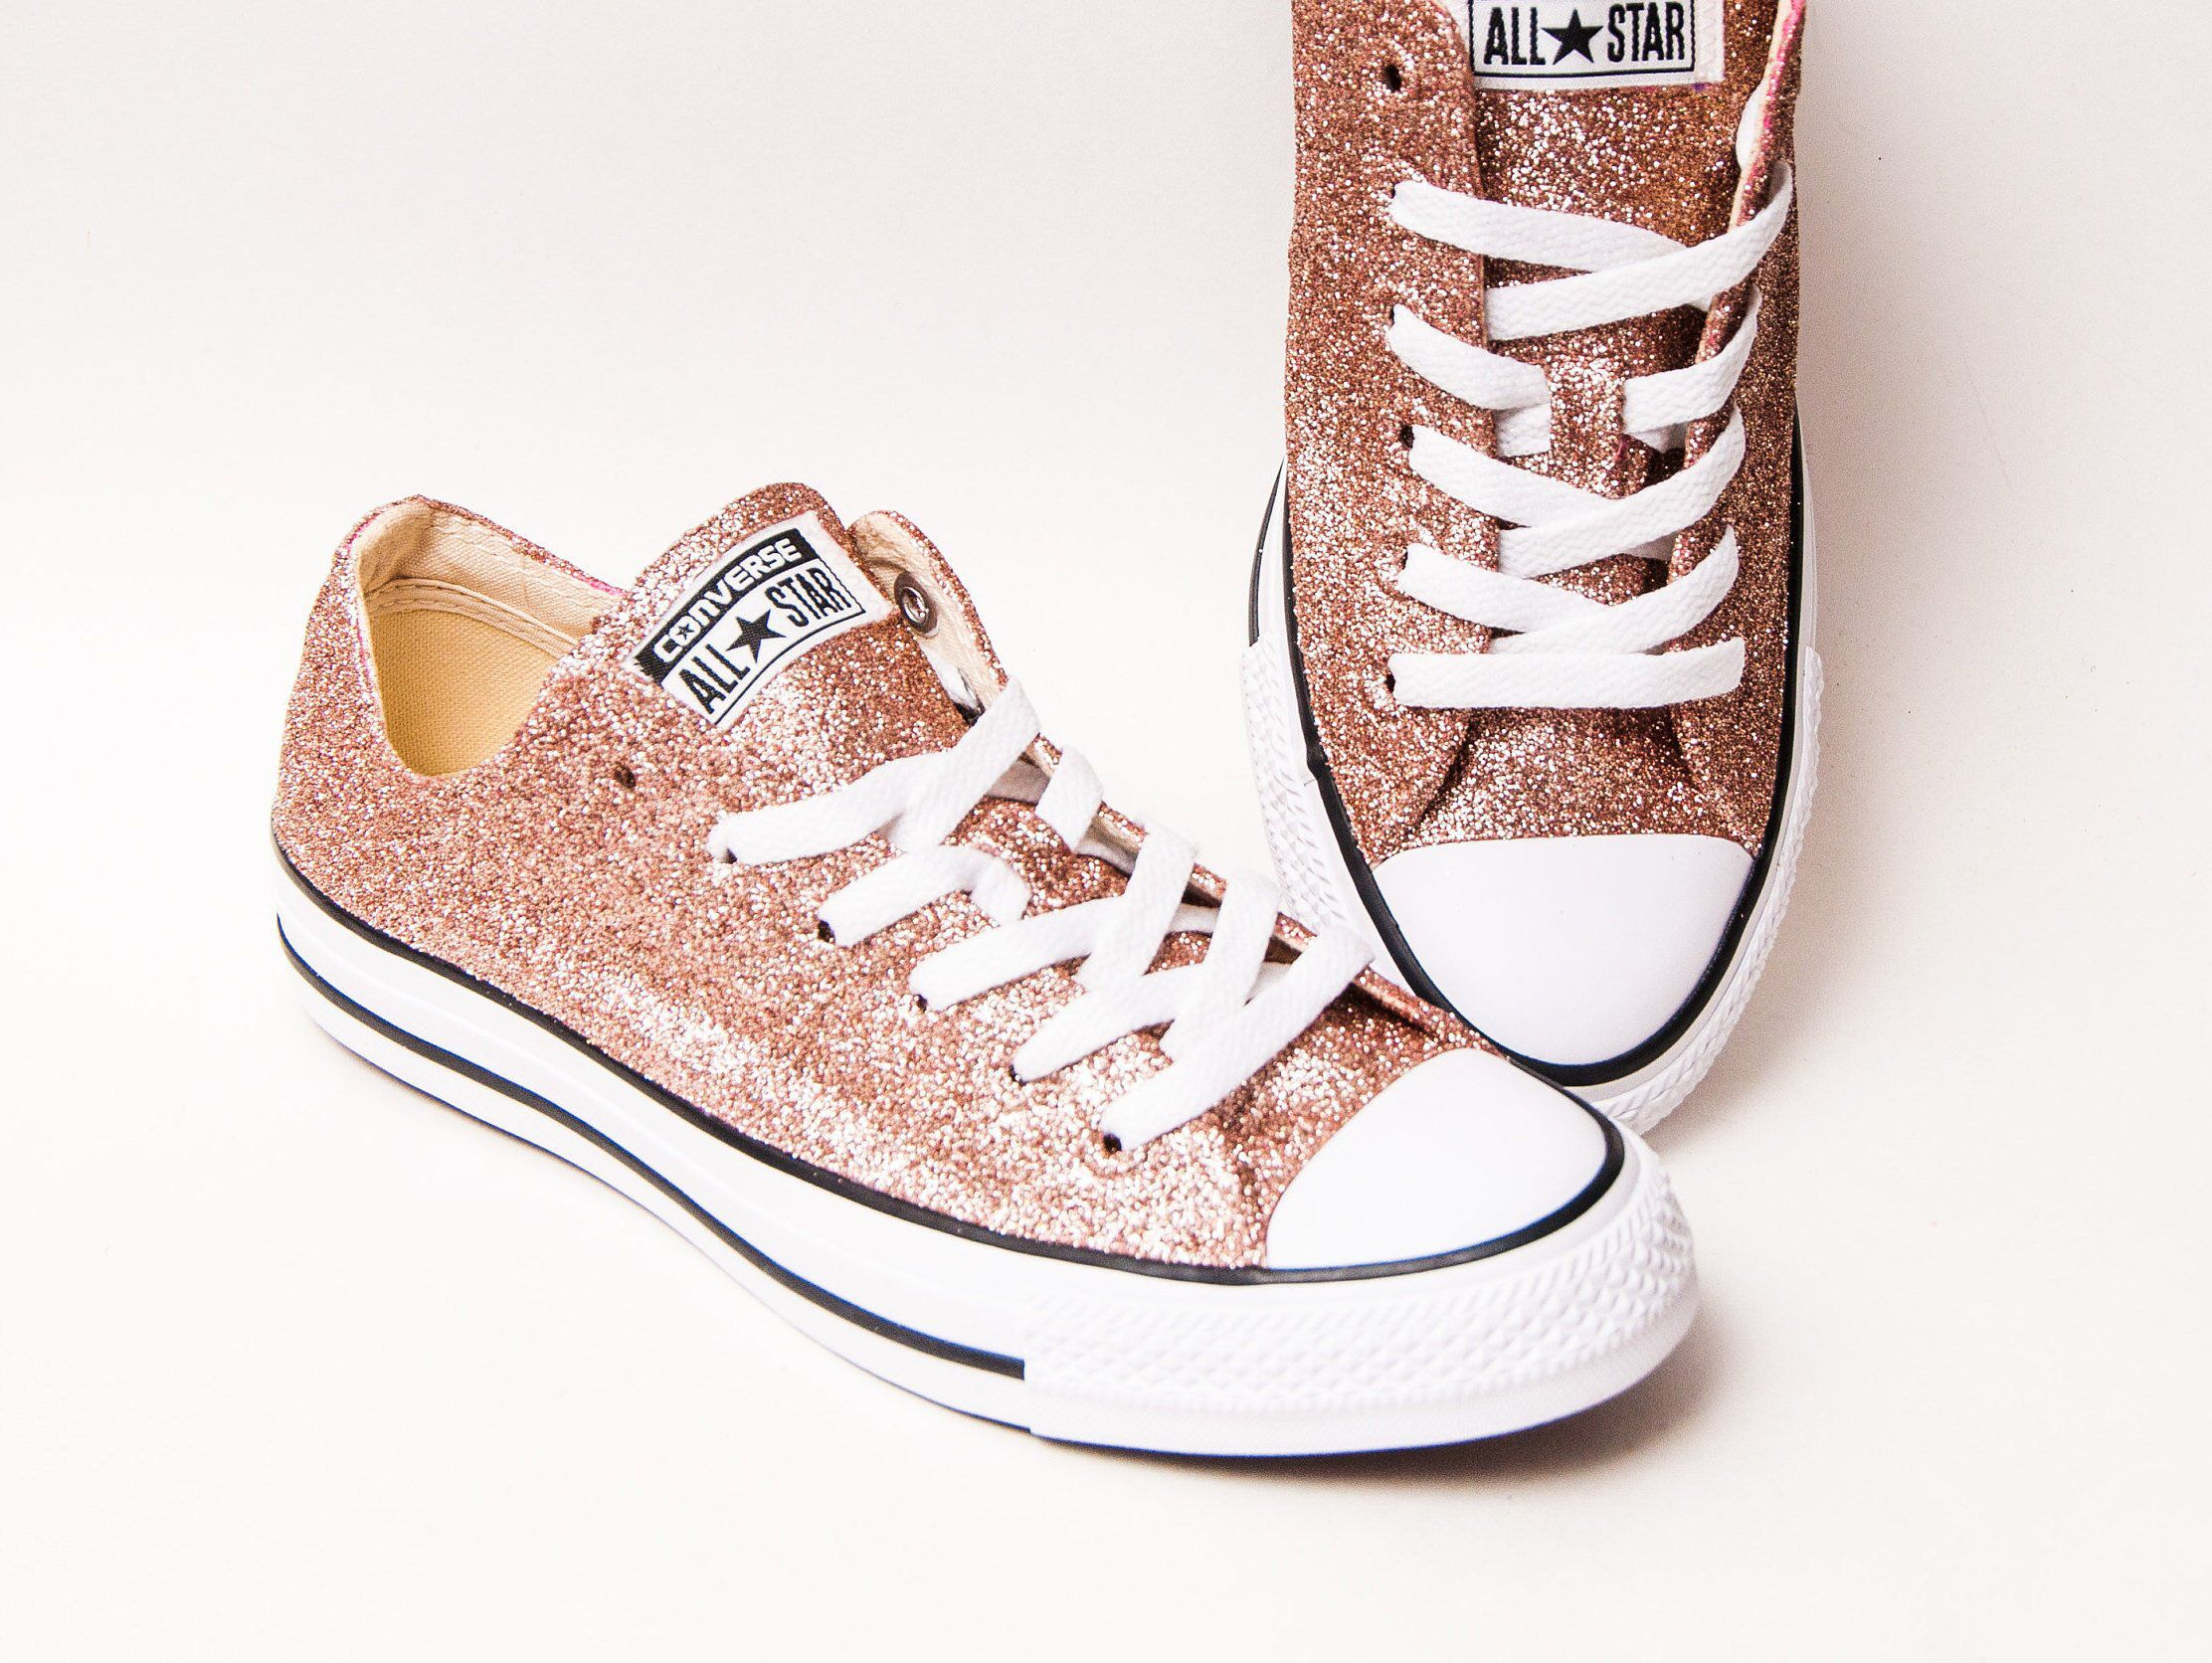 Rose Gold Glitter Converse® All Star Low Top Sneakers in